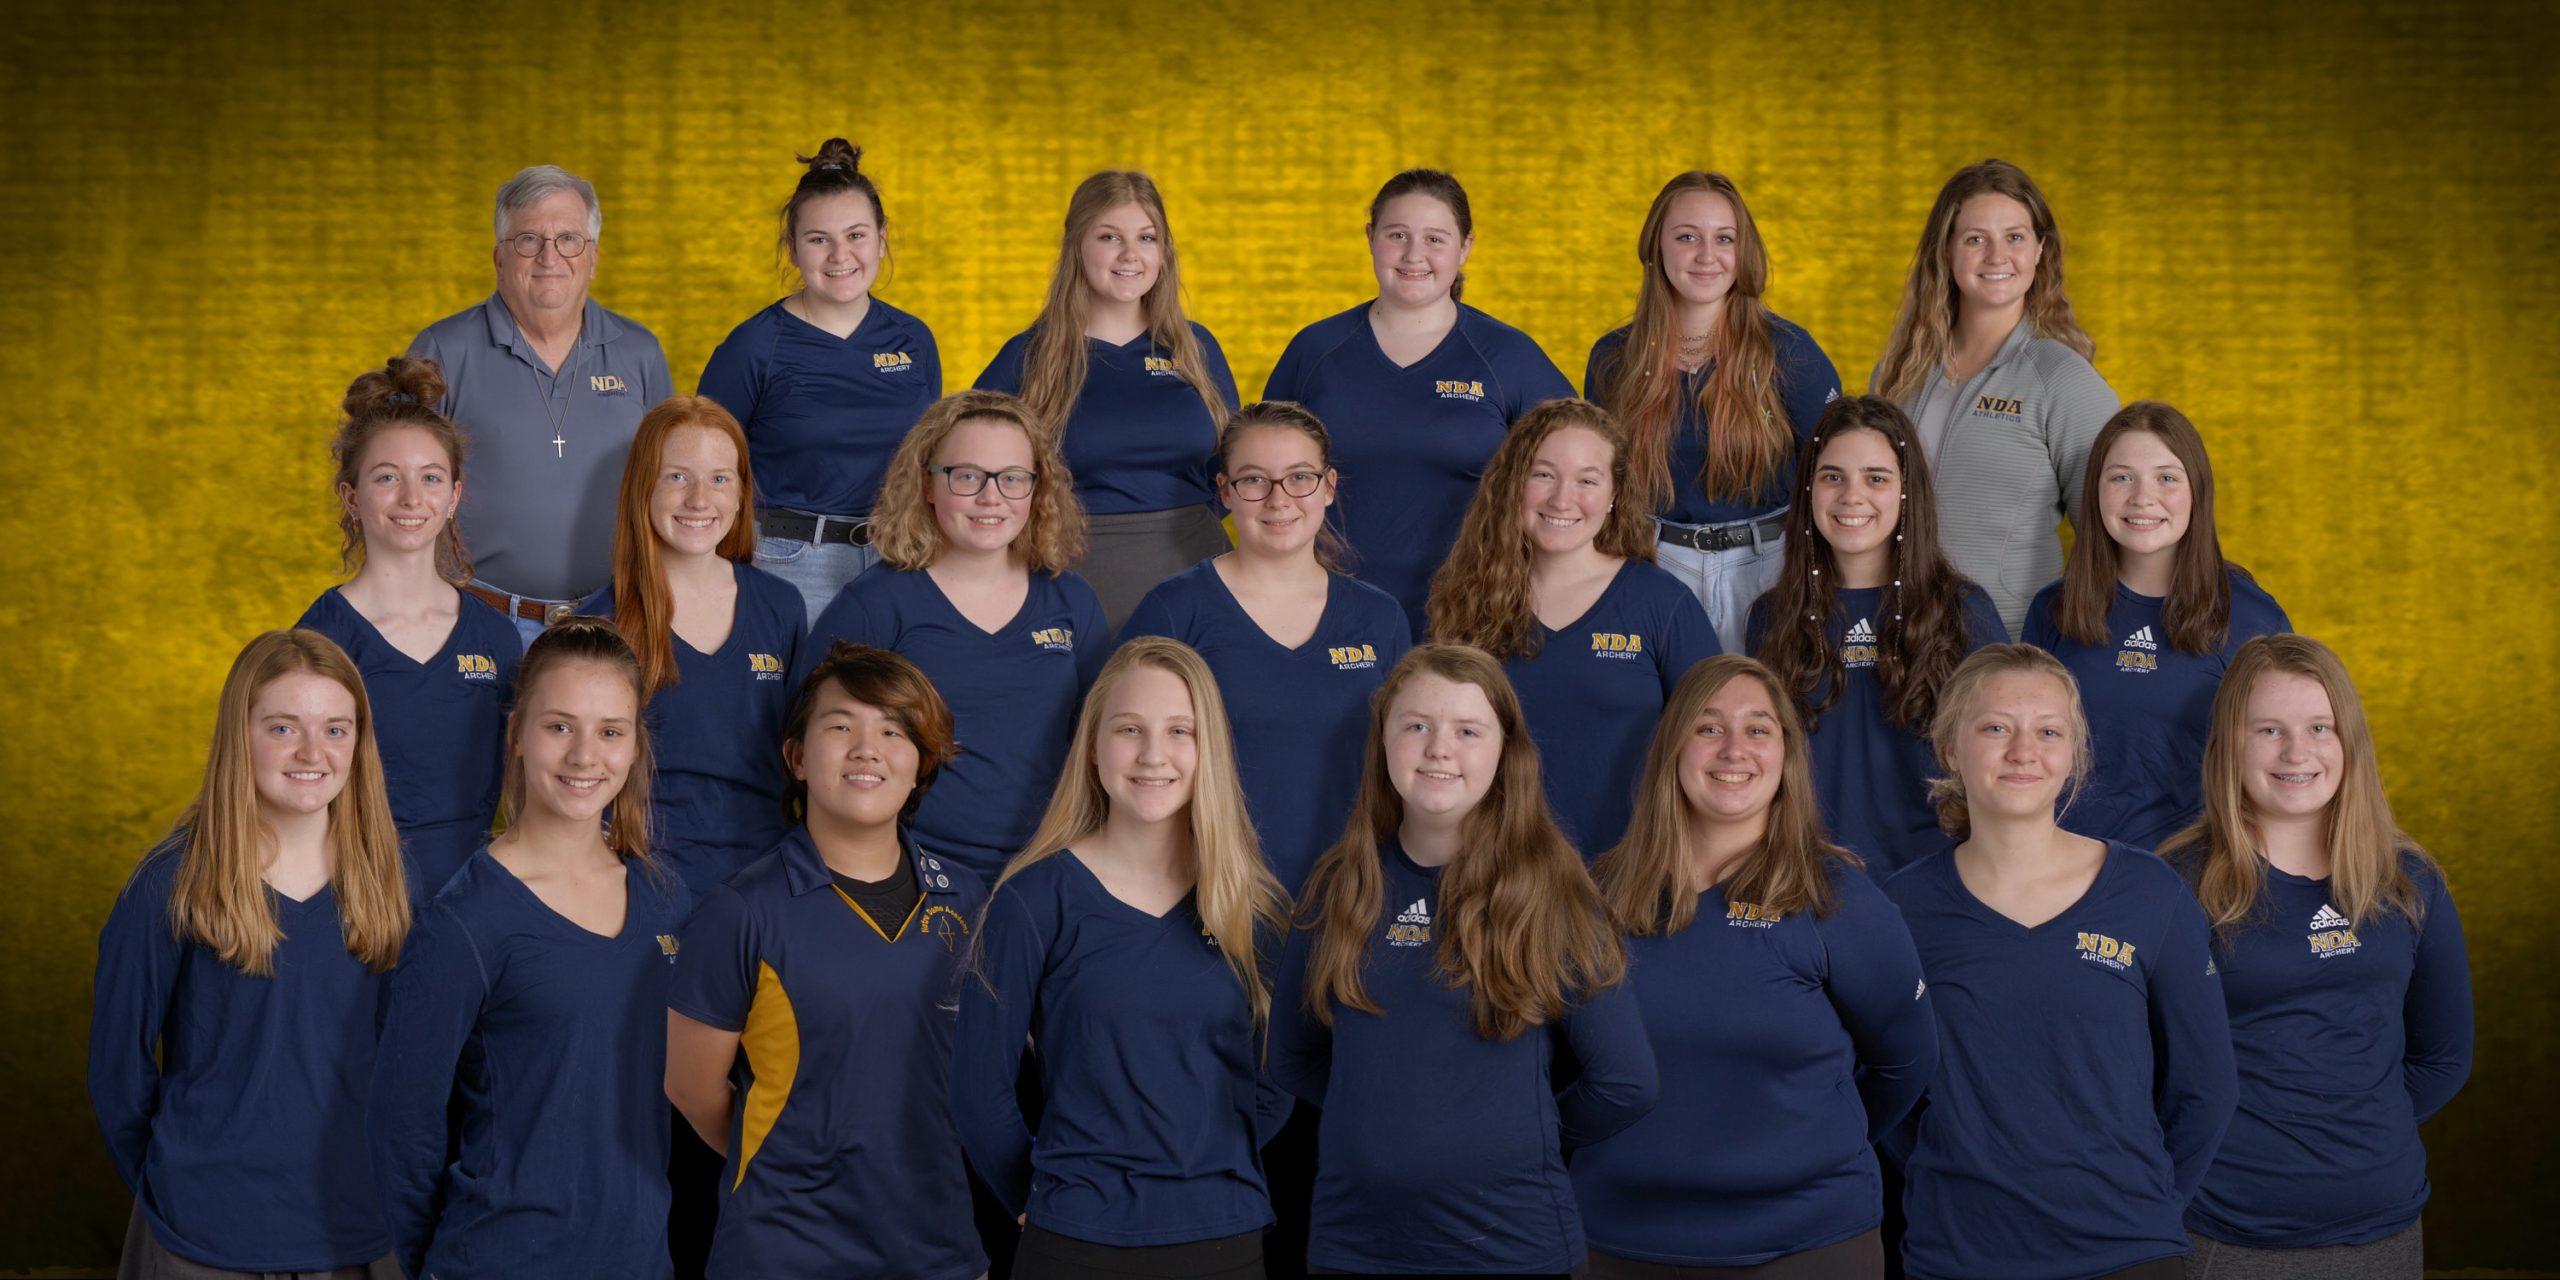 2021 Archery team at the Notre Dame Academy catholic all-girls school in Covington, Northern Kentucky.